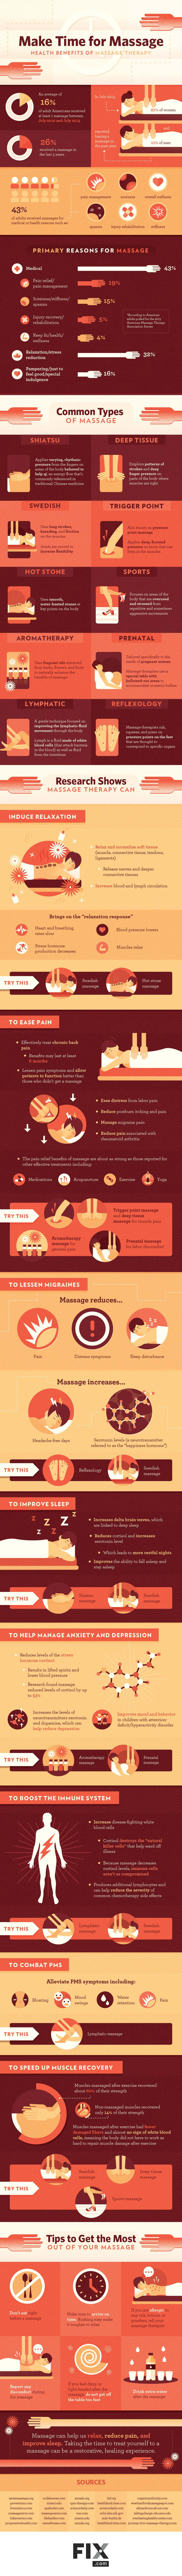 This Is Why You Must Get Massages - Infographic